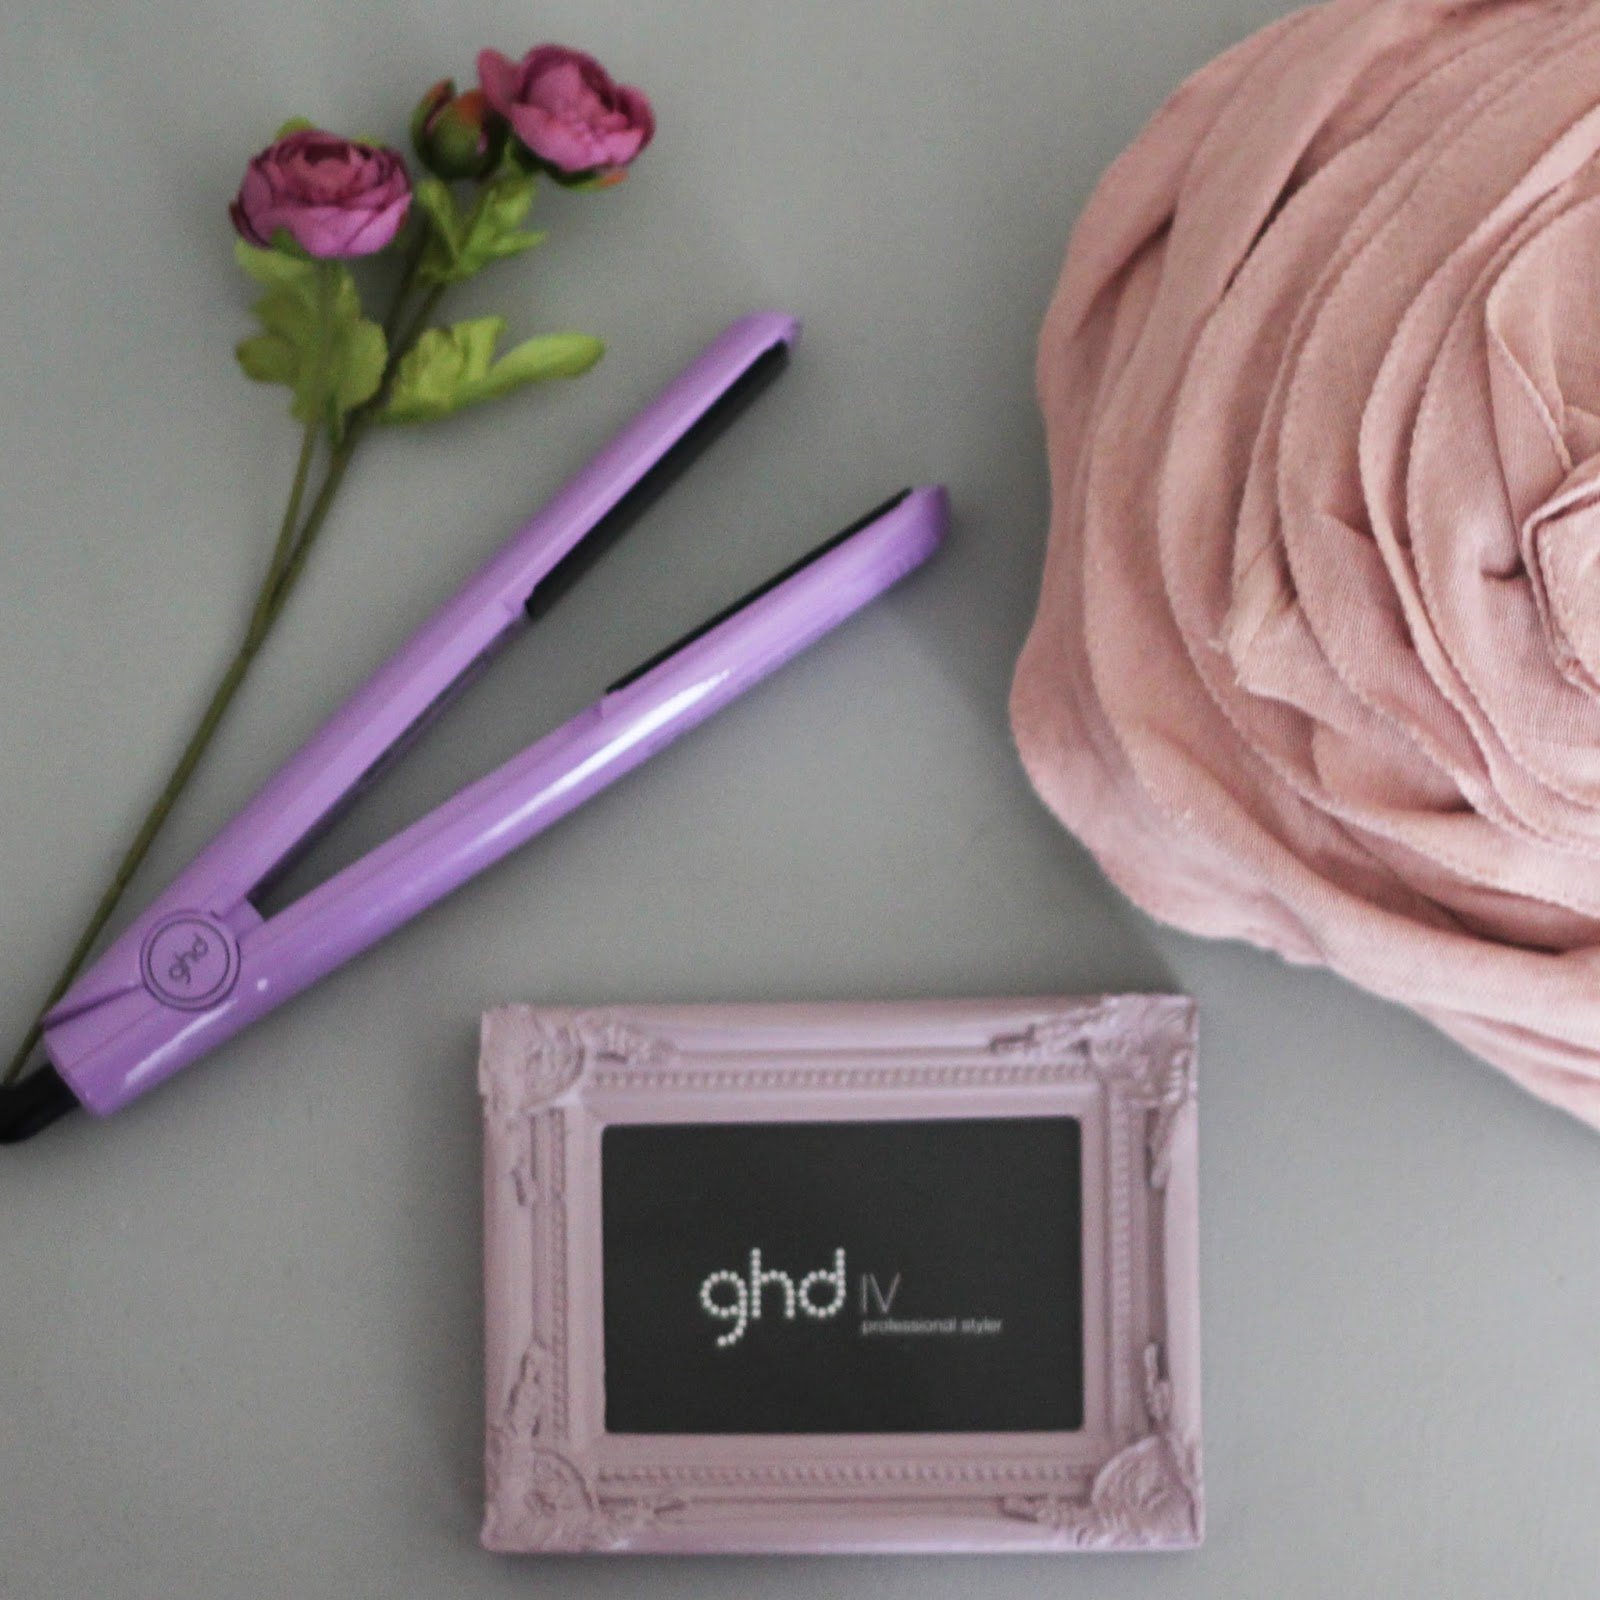 blog mode lifestyle et bonne humeur la penderie de chlo collection pastel ghd. Black Bedroom Furniture Sets. Home Design Ideas